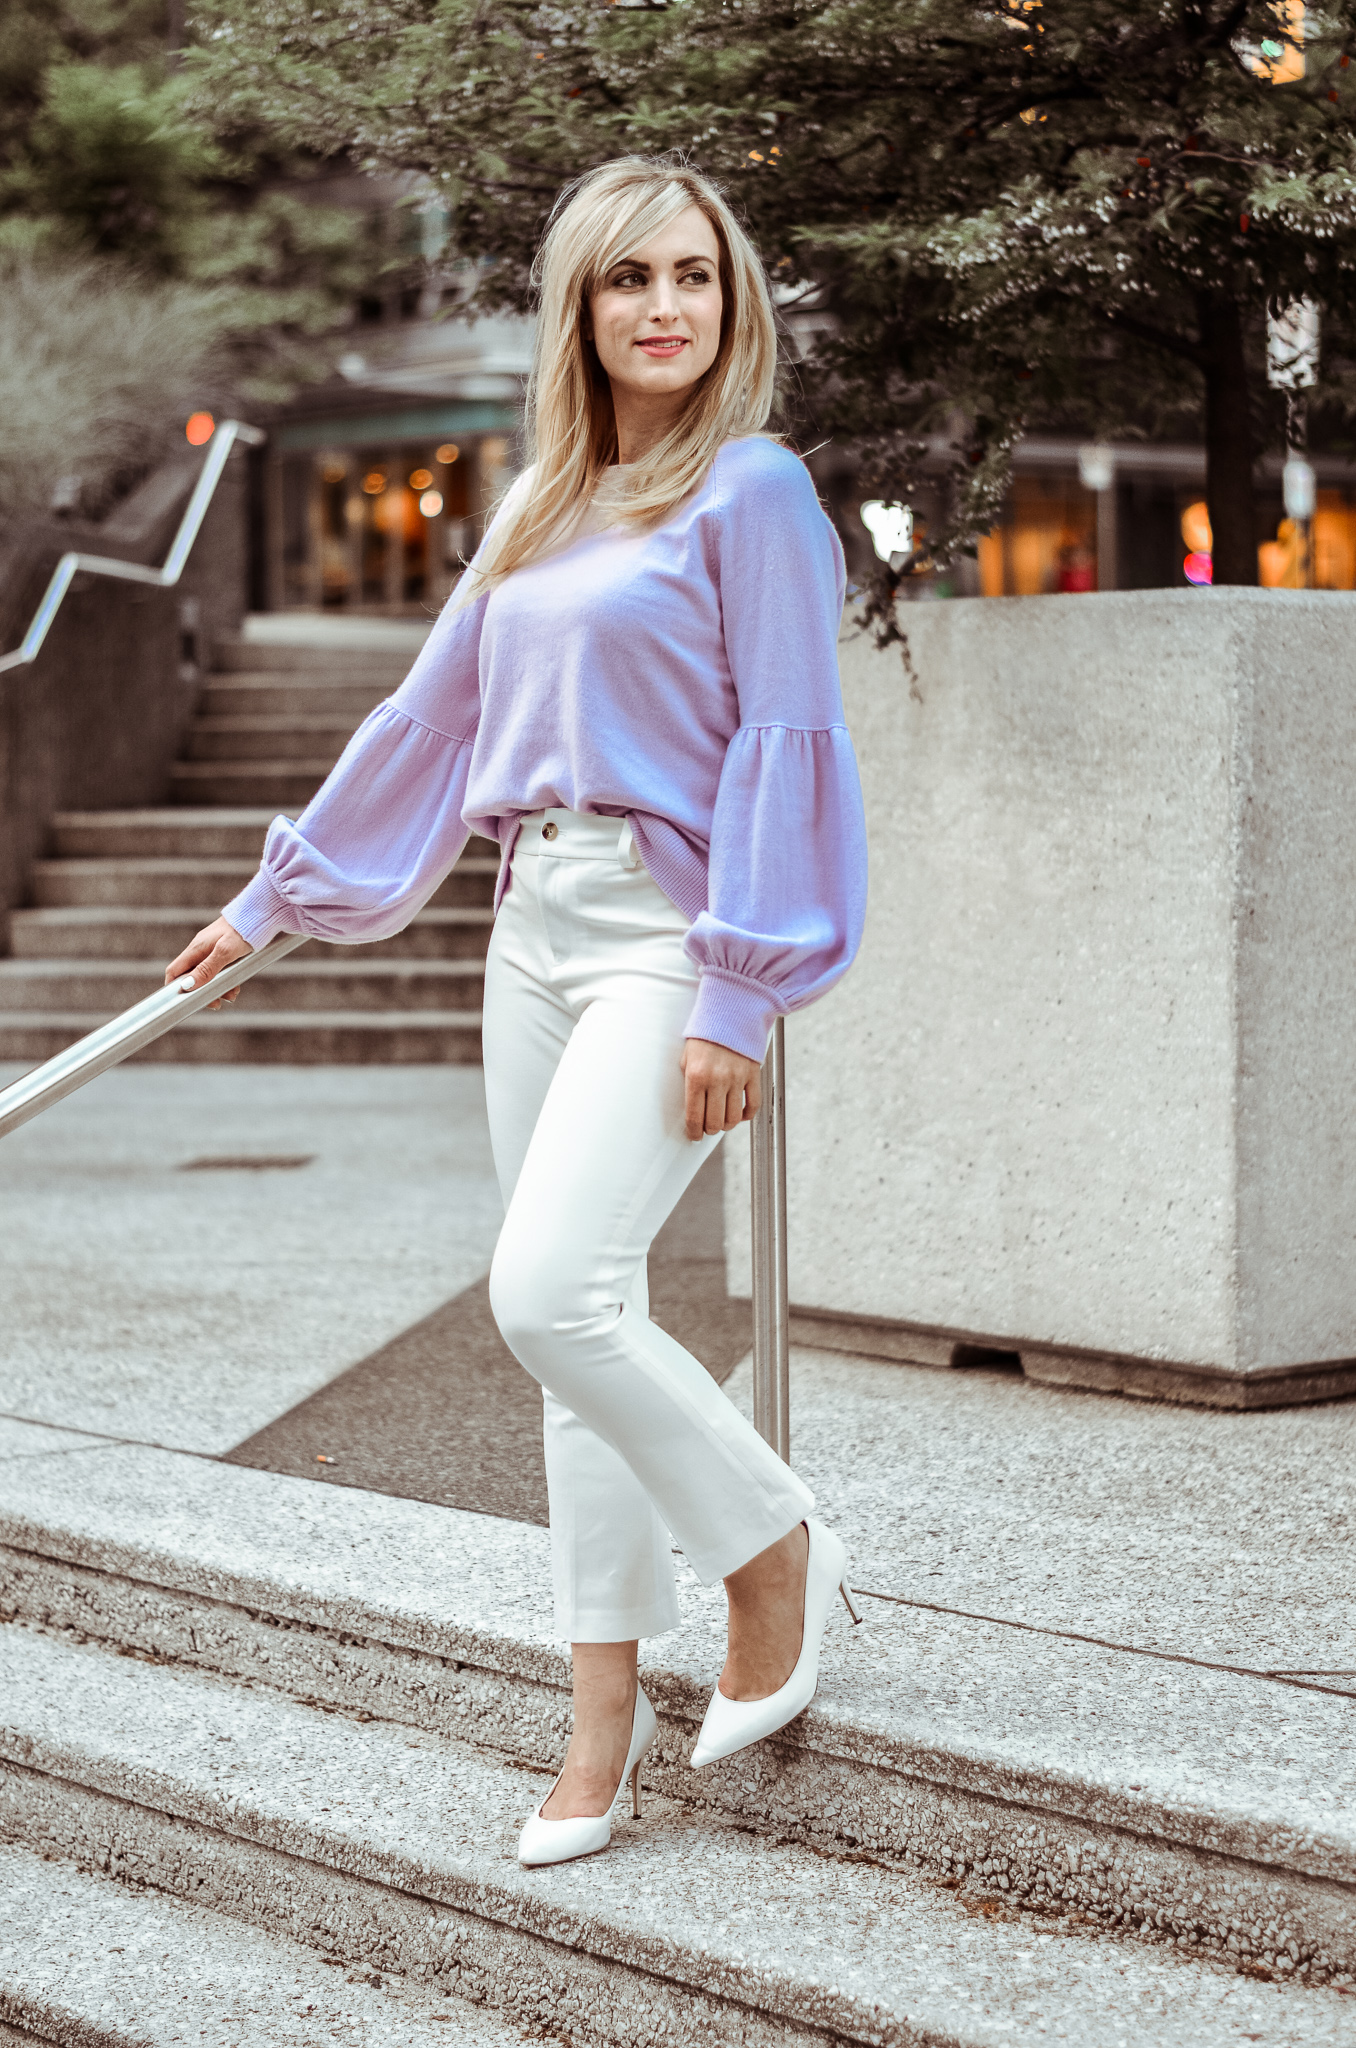 fashion blogger legallee blonde wearing white capri pants and lilac cashmere sweater